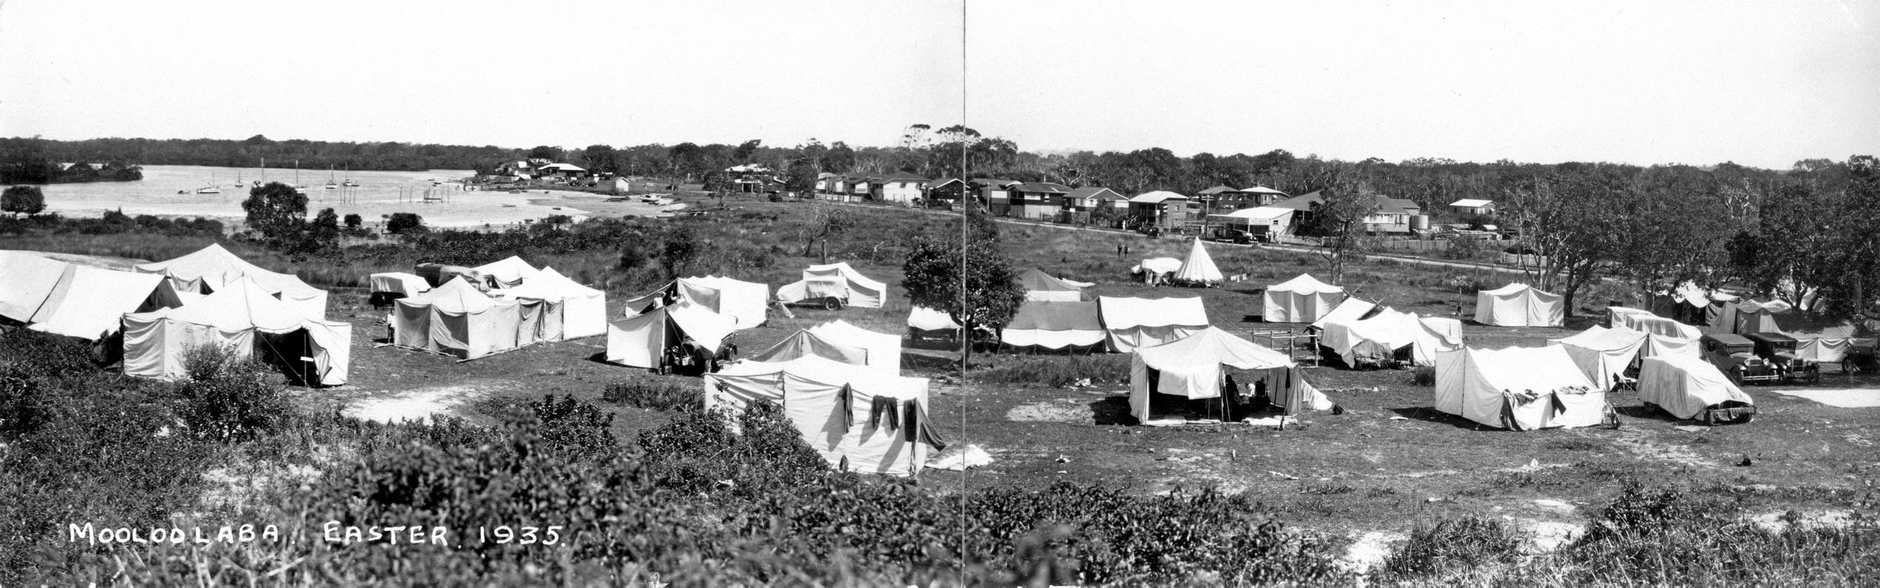 Camping on the Spit at Mooloolaba, Easter, 1935